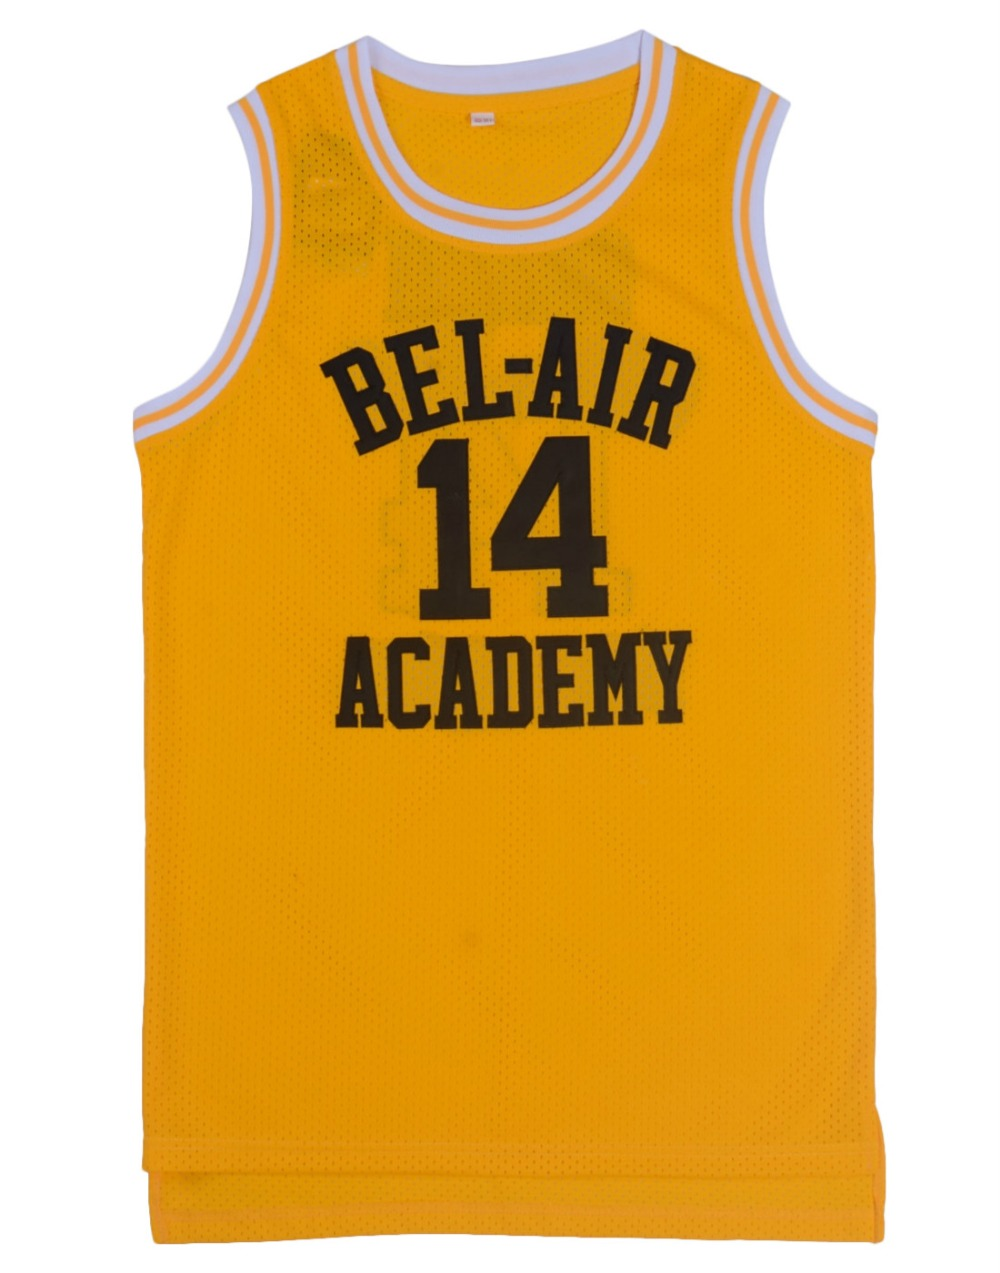 Prix pour EJ de Basket-Ball Jersey #14 Will Smith #25 Carlton Alfonso Banques Le Prince De Bel-Air Jersey cousu